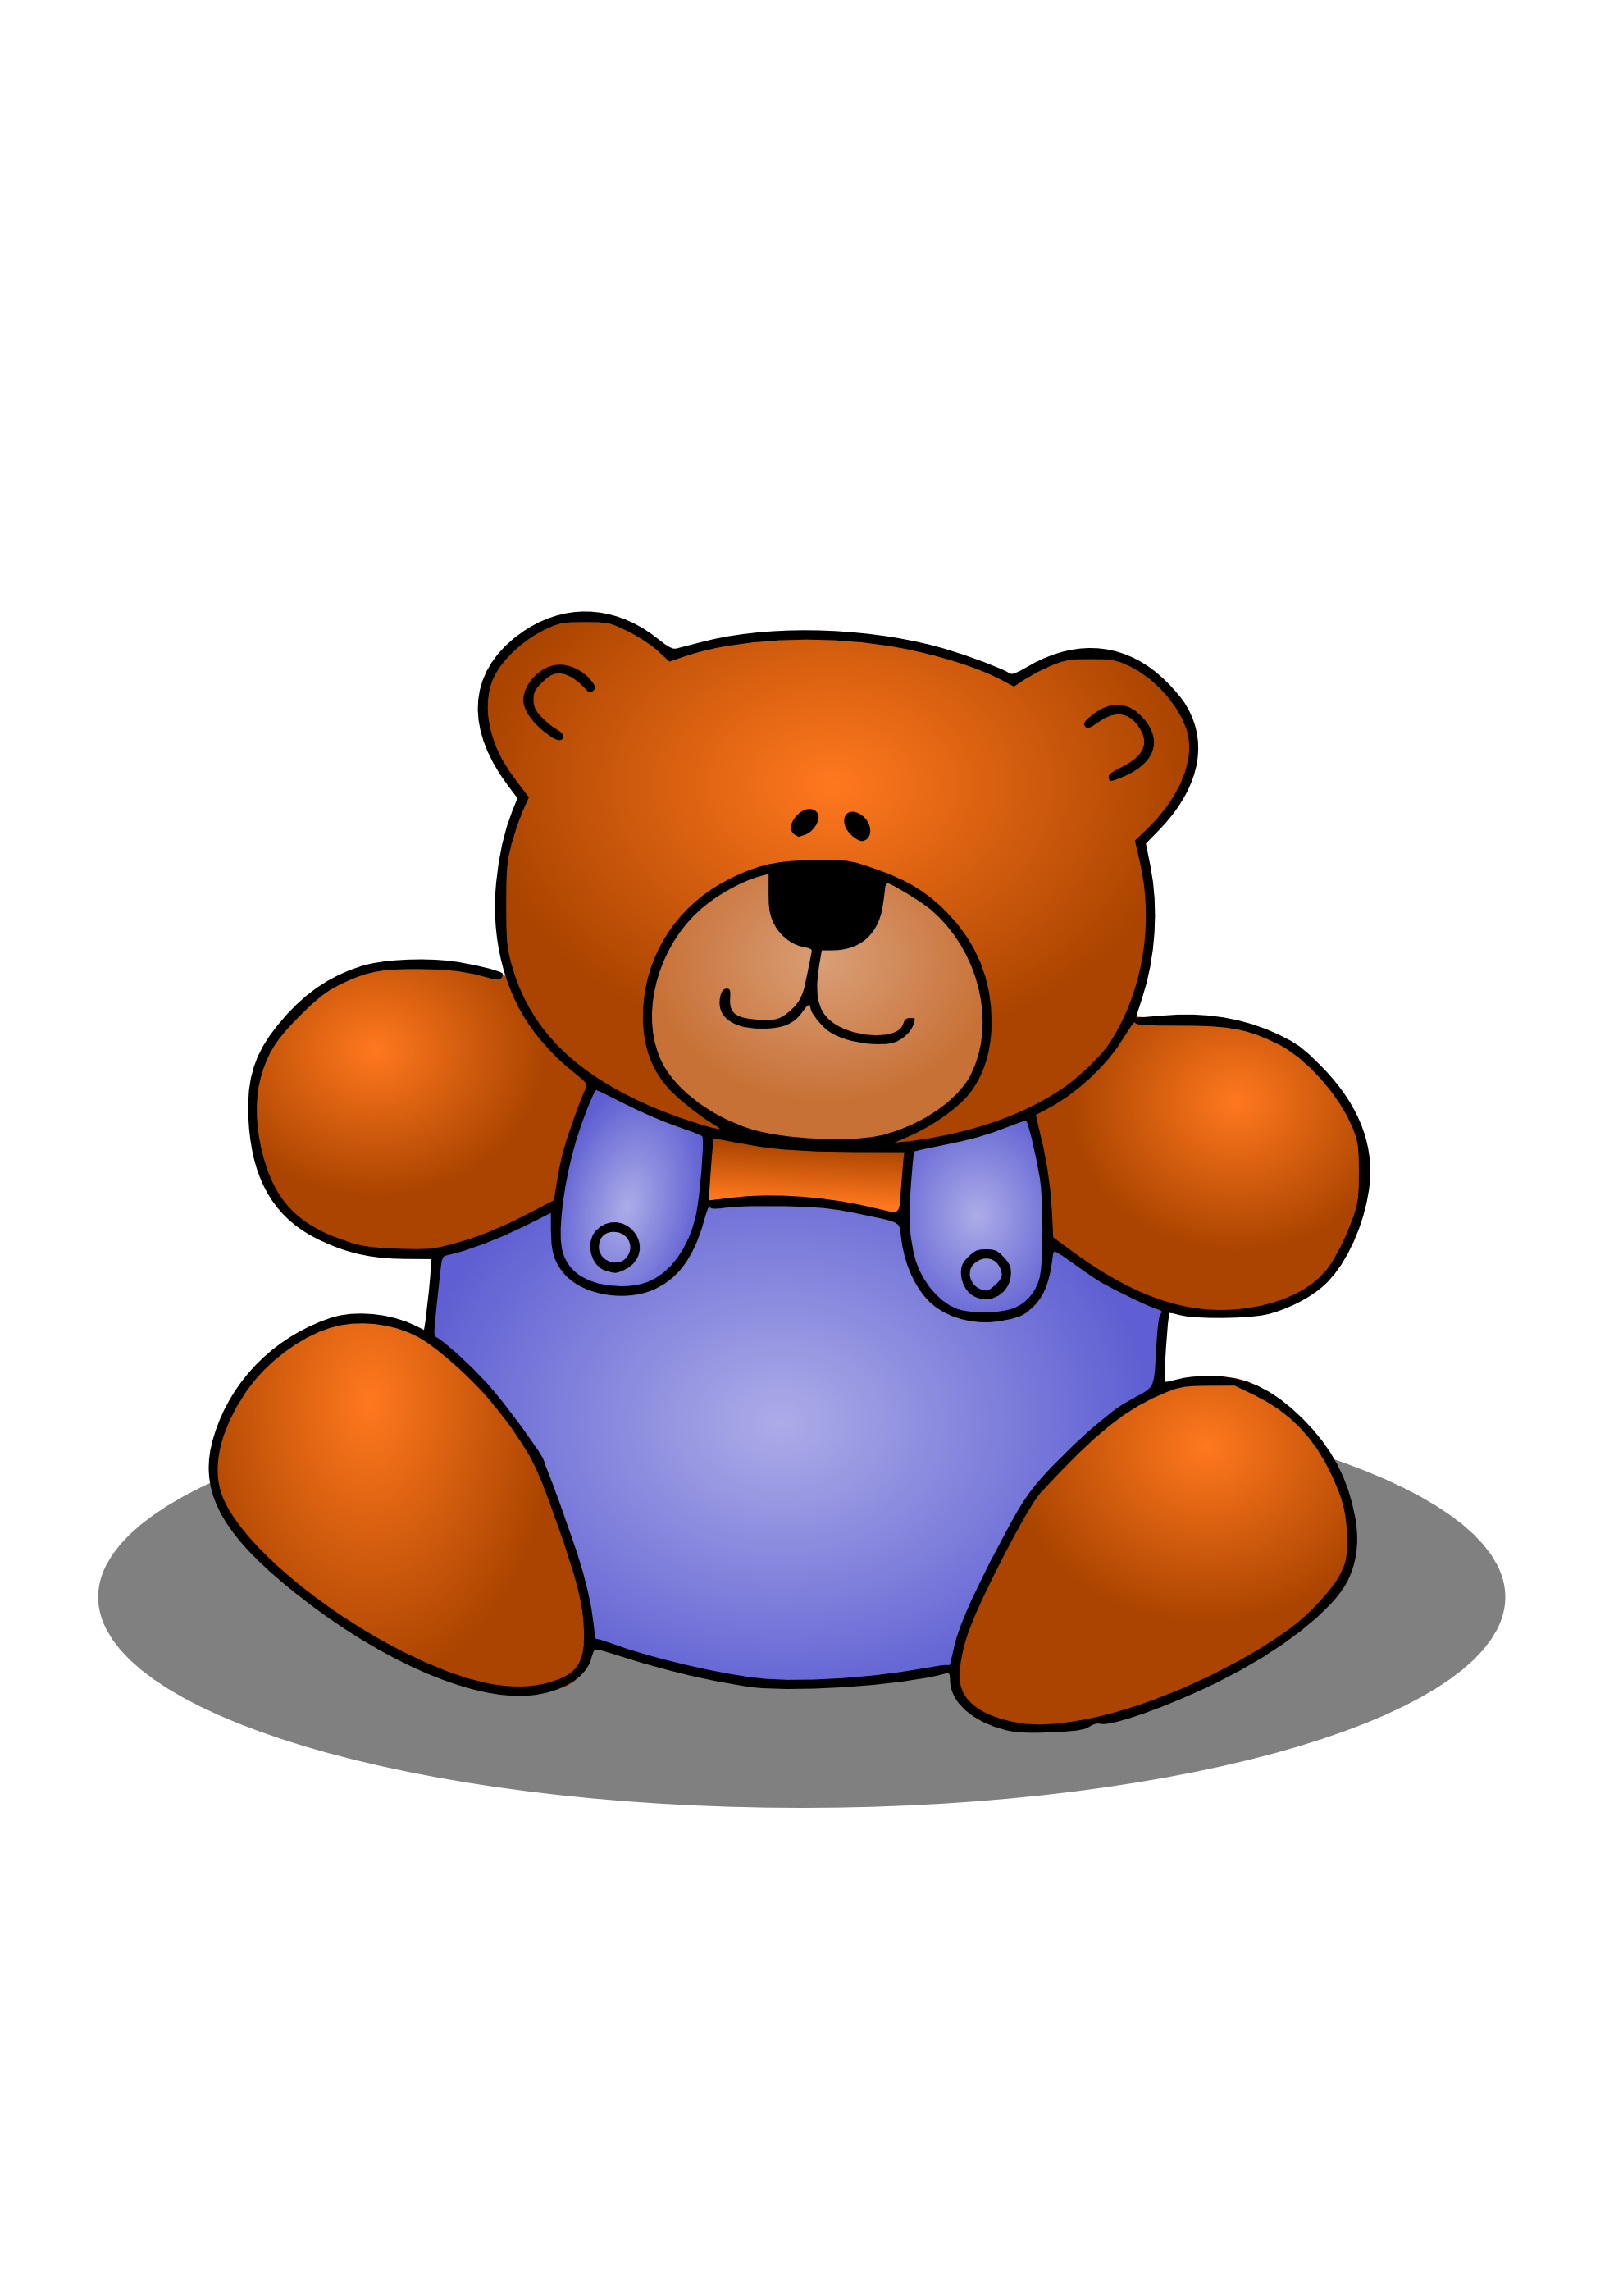 Stuffed Animal clipart #13, Download drawings